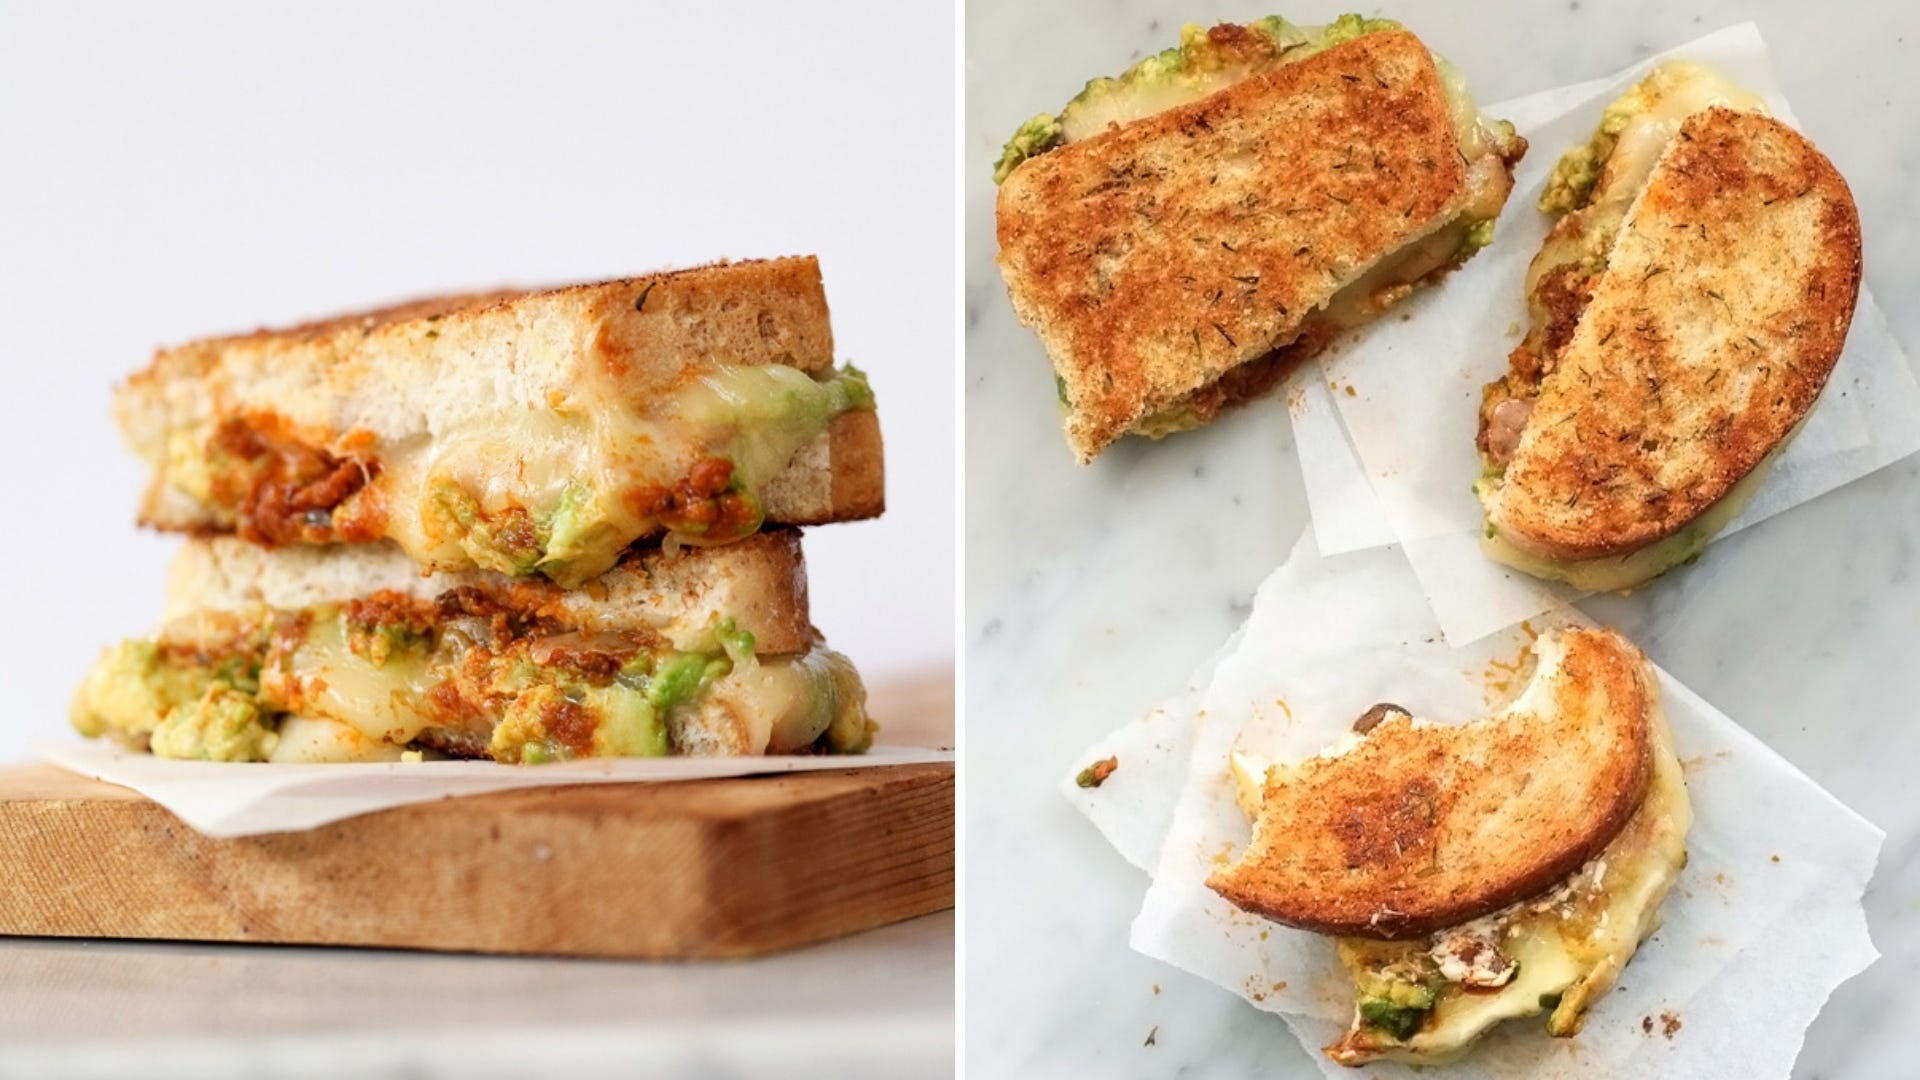 A grilled cheese sandwich with avocado is stacked on a cutting board and three pieces sit on a table.